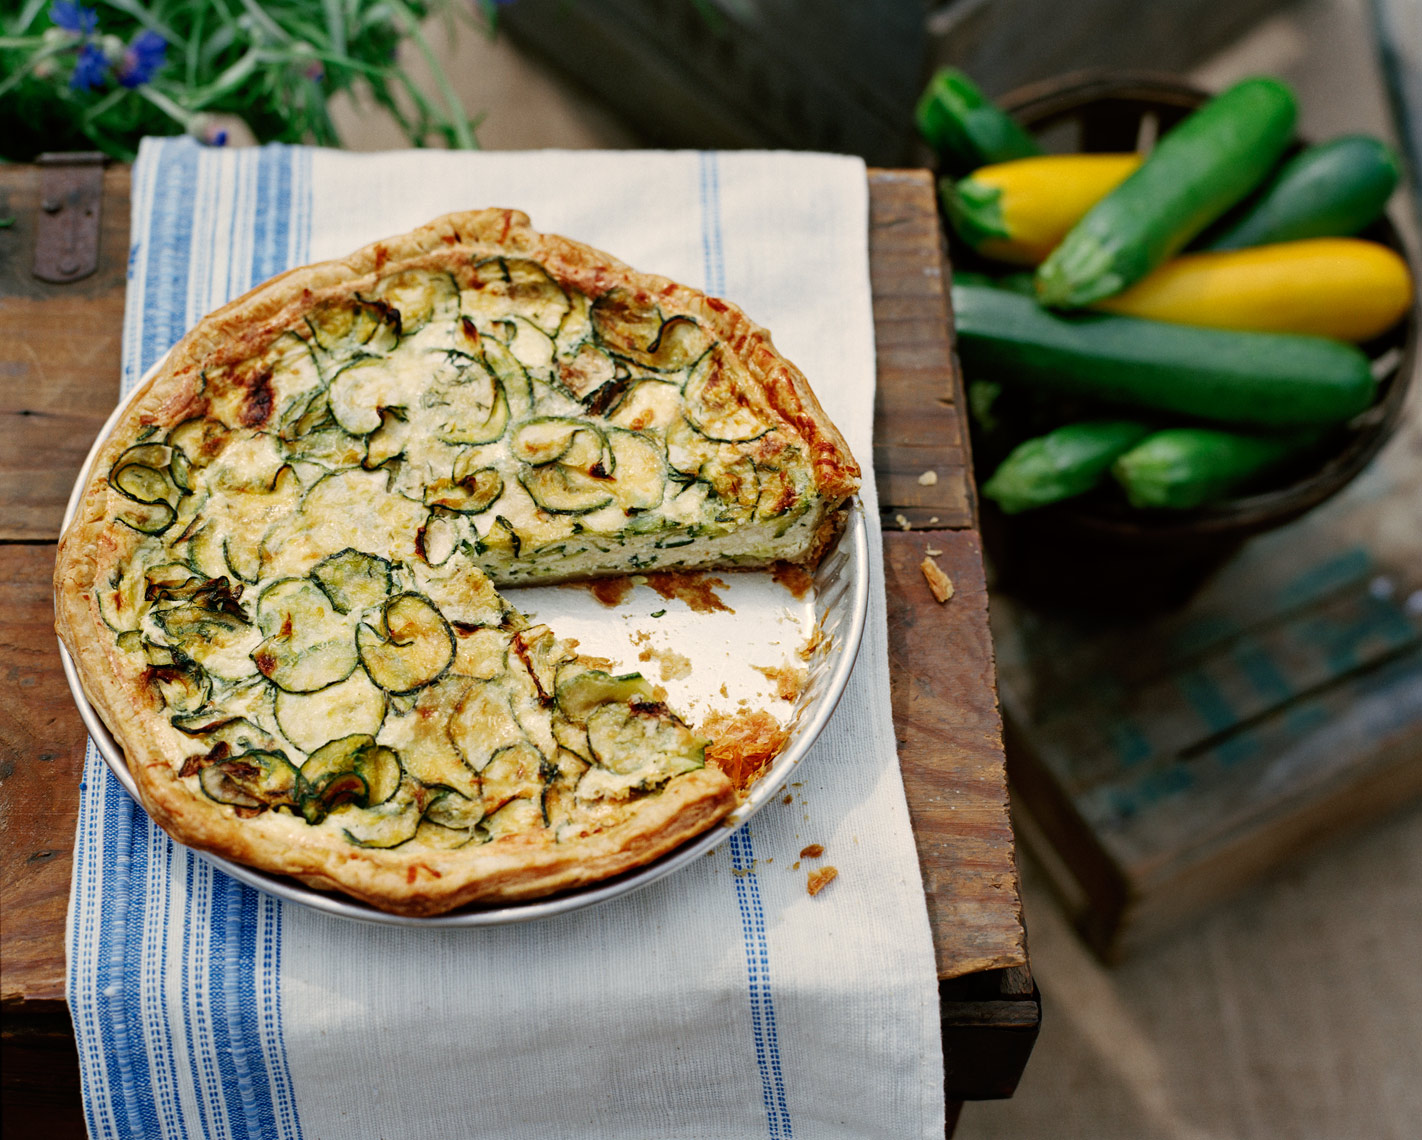 zucchini quiche with farmers market produce with vintage linen